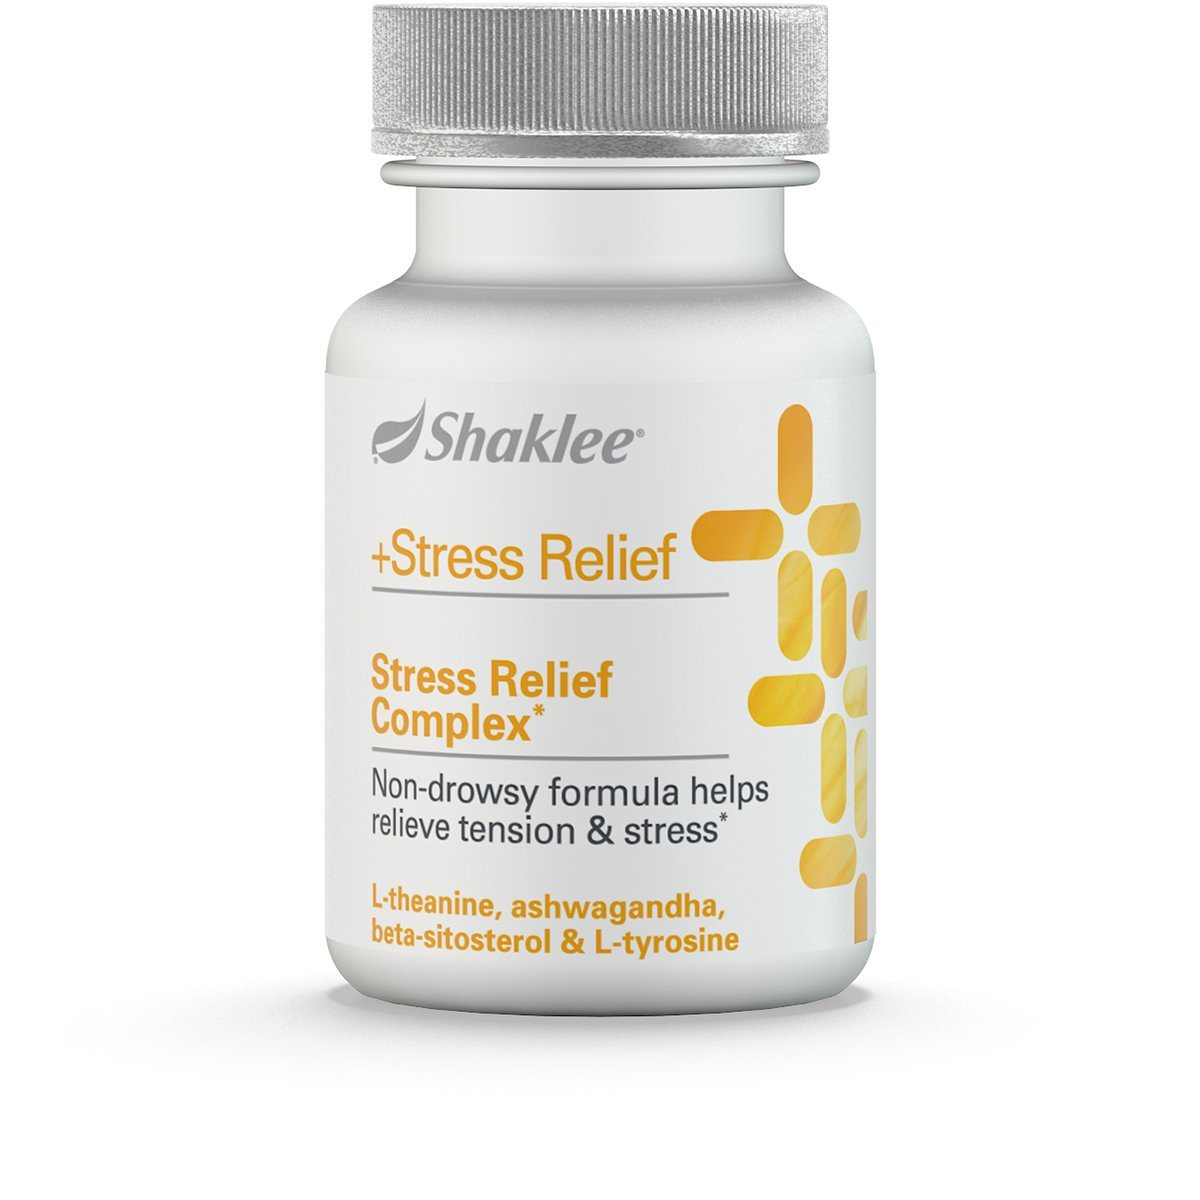 Choose Your Stress Relief Exclusive Online Offer Content – TryShaklee